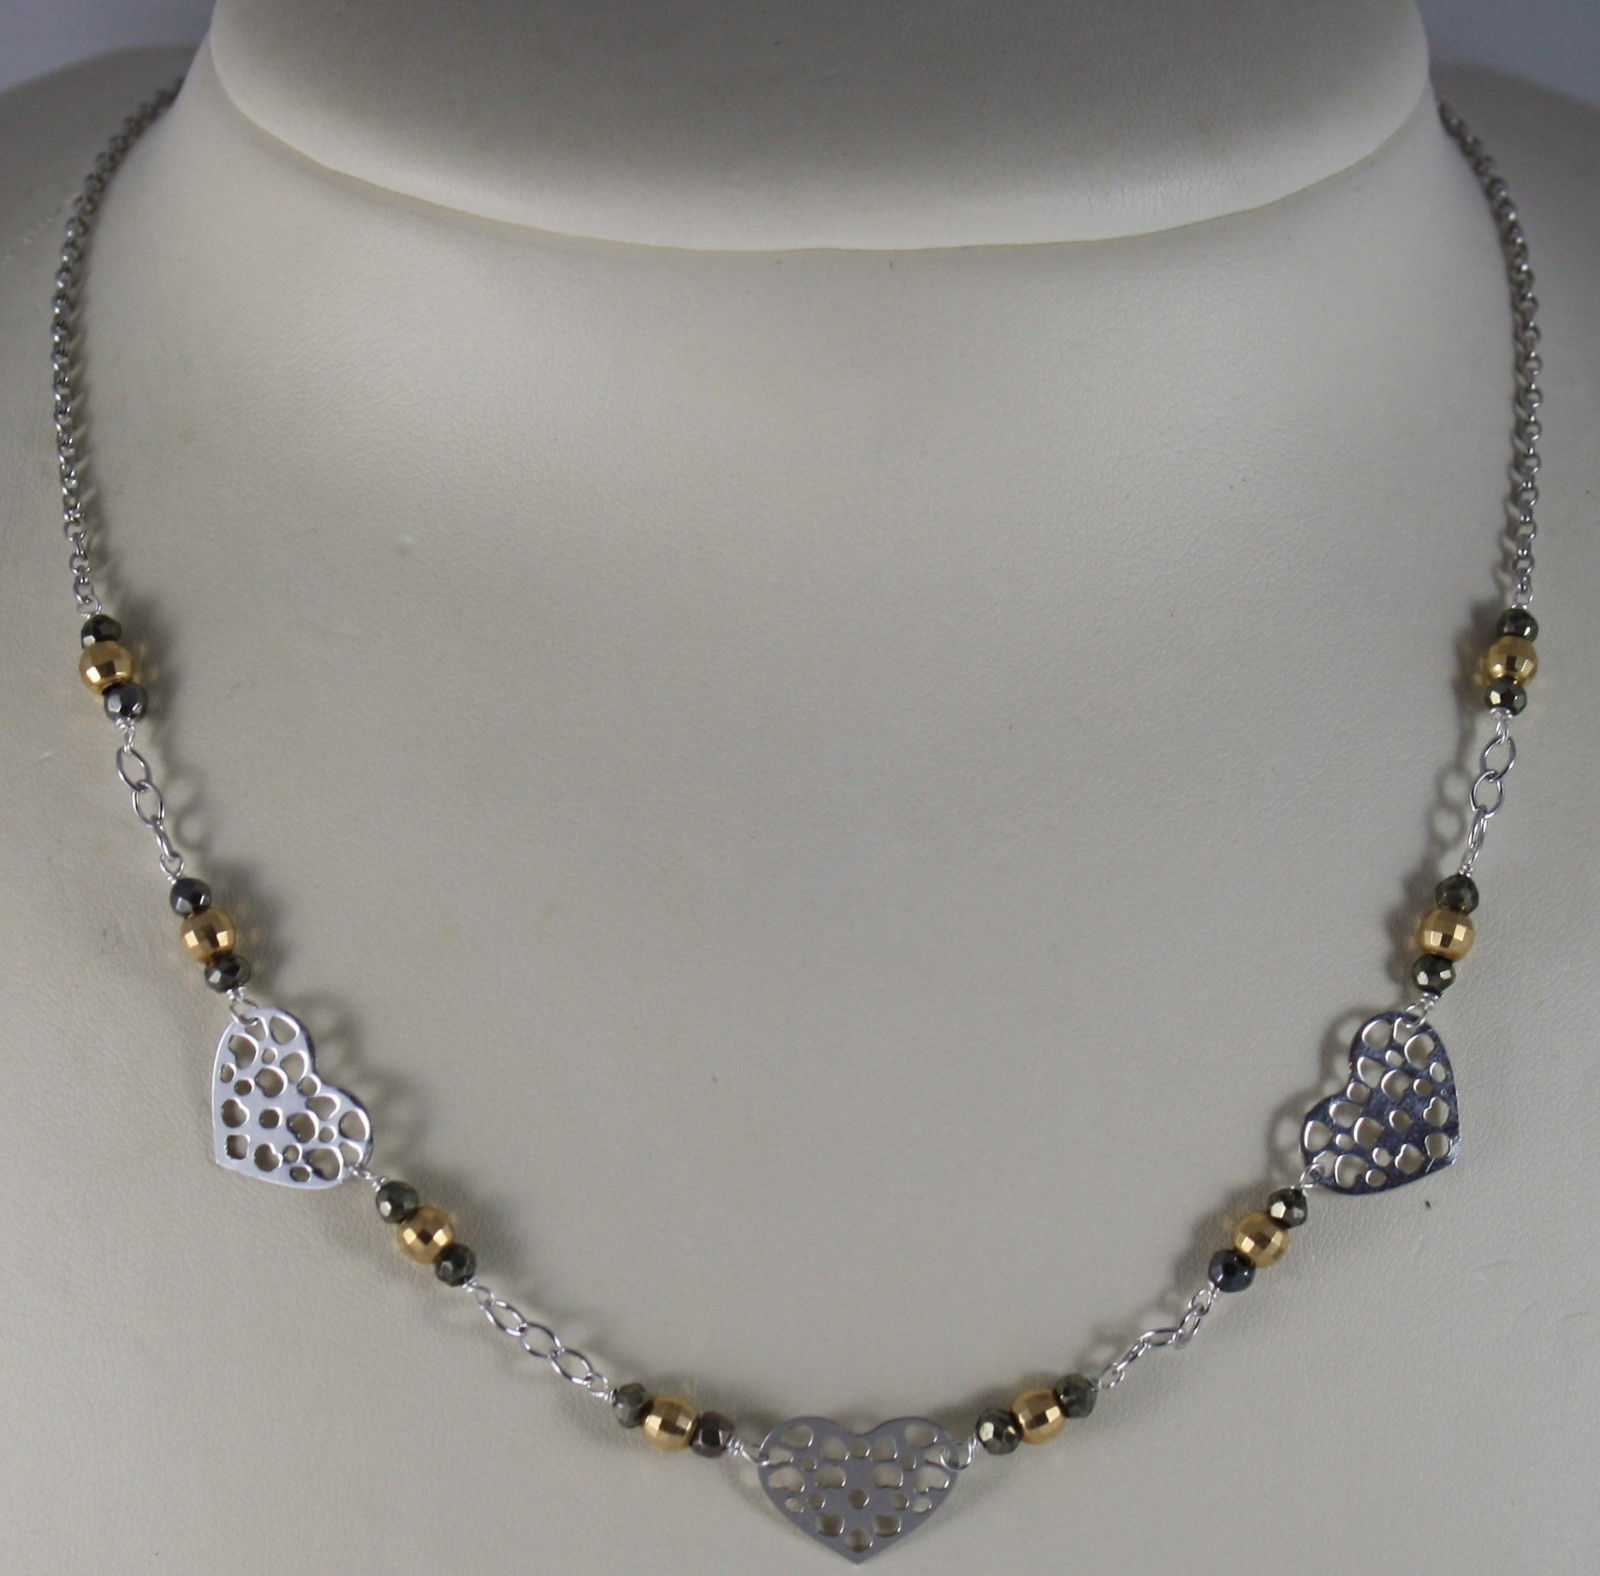 .925 RHODIUM SILVER NECKLACE WITH GOLDEN AND BURNISHED SPHERES AND HEART